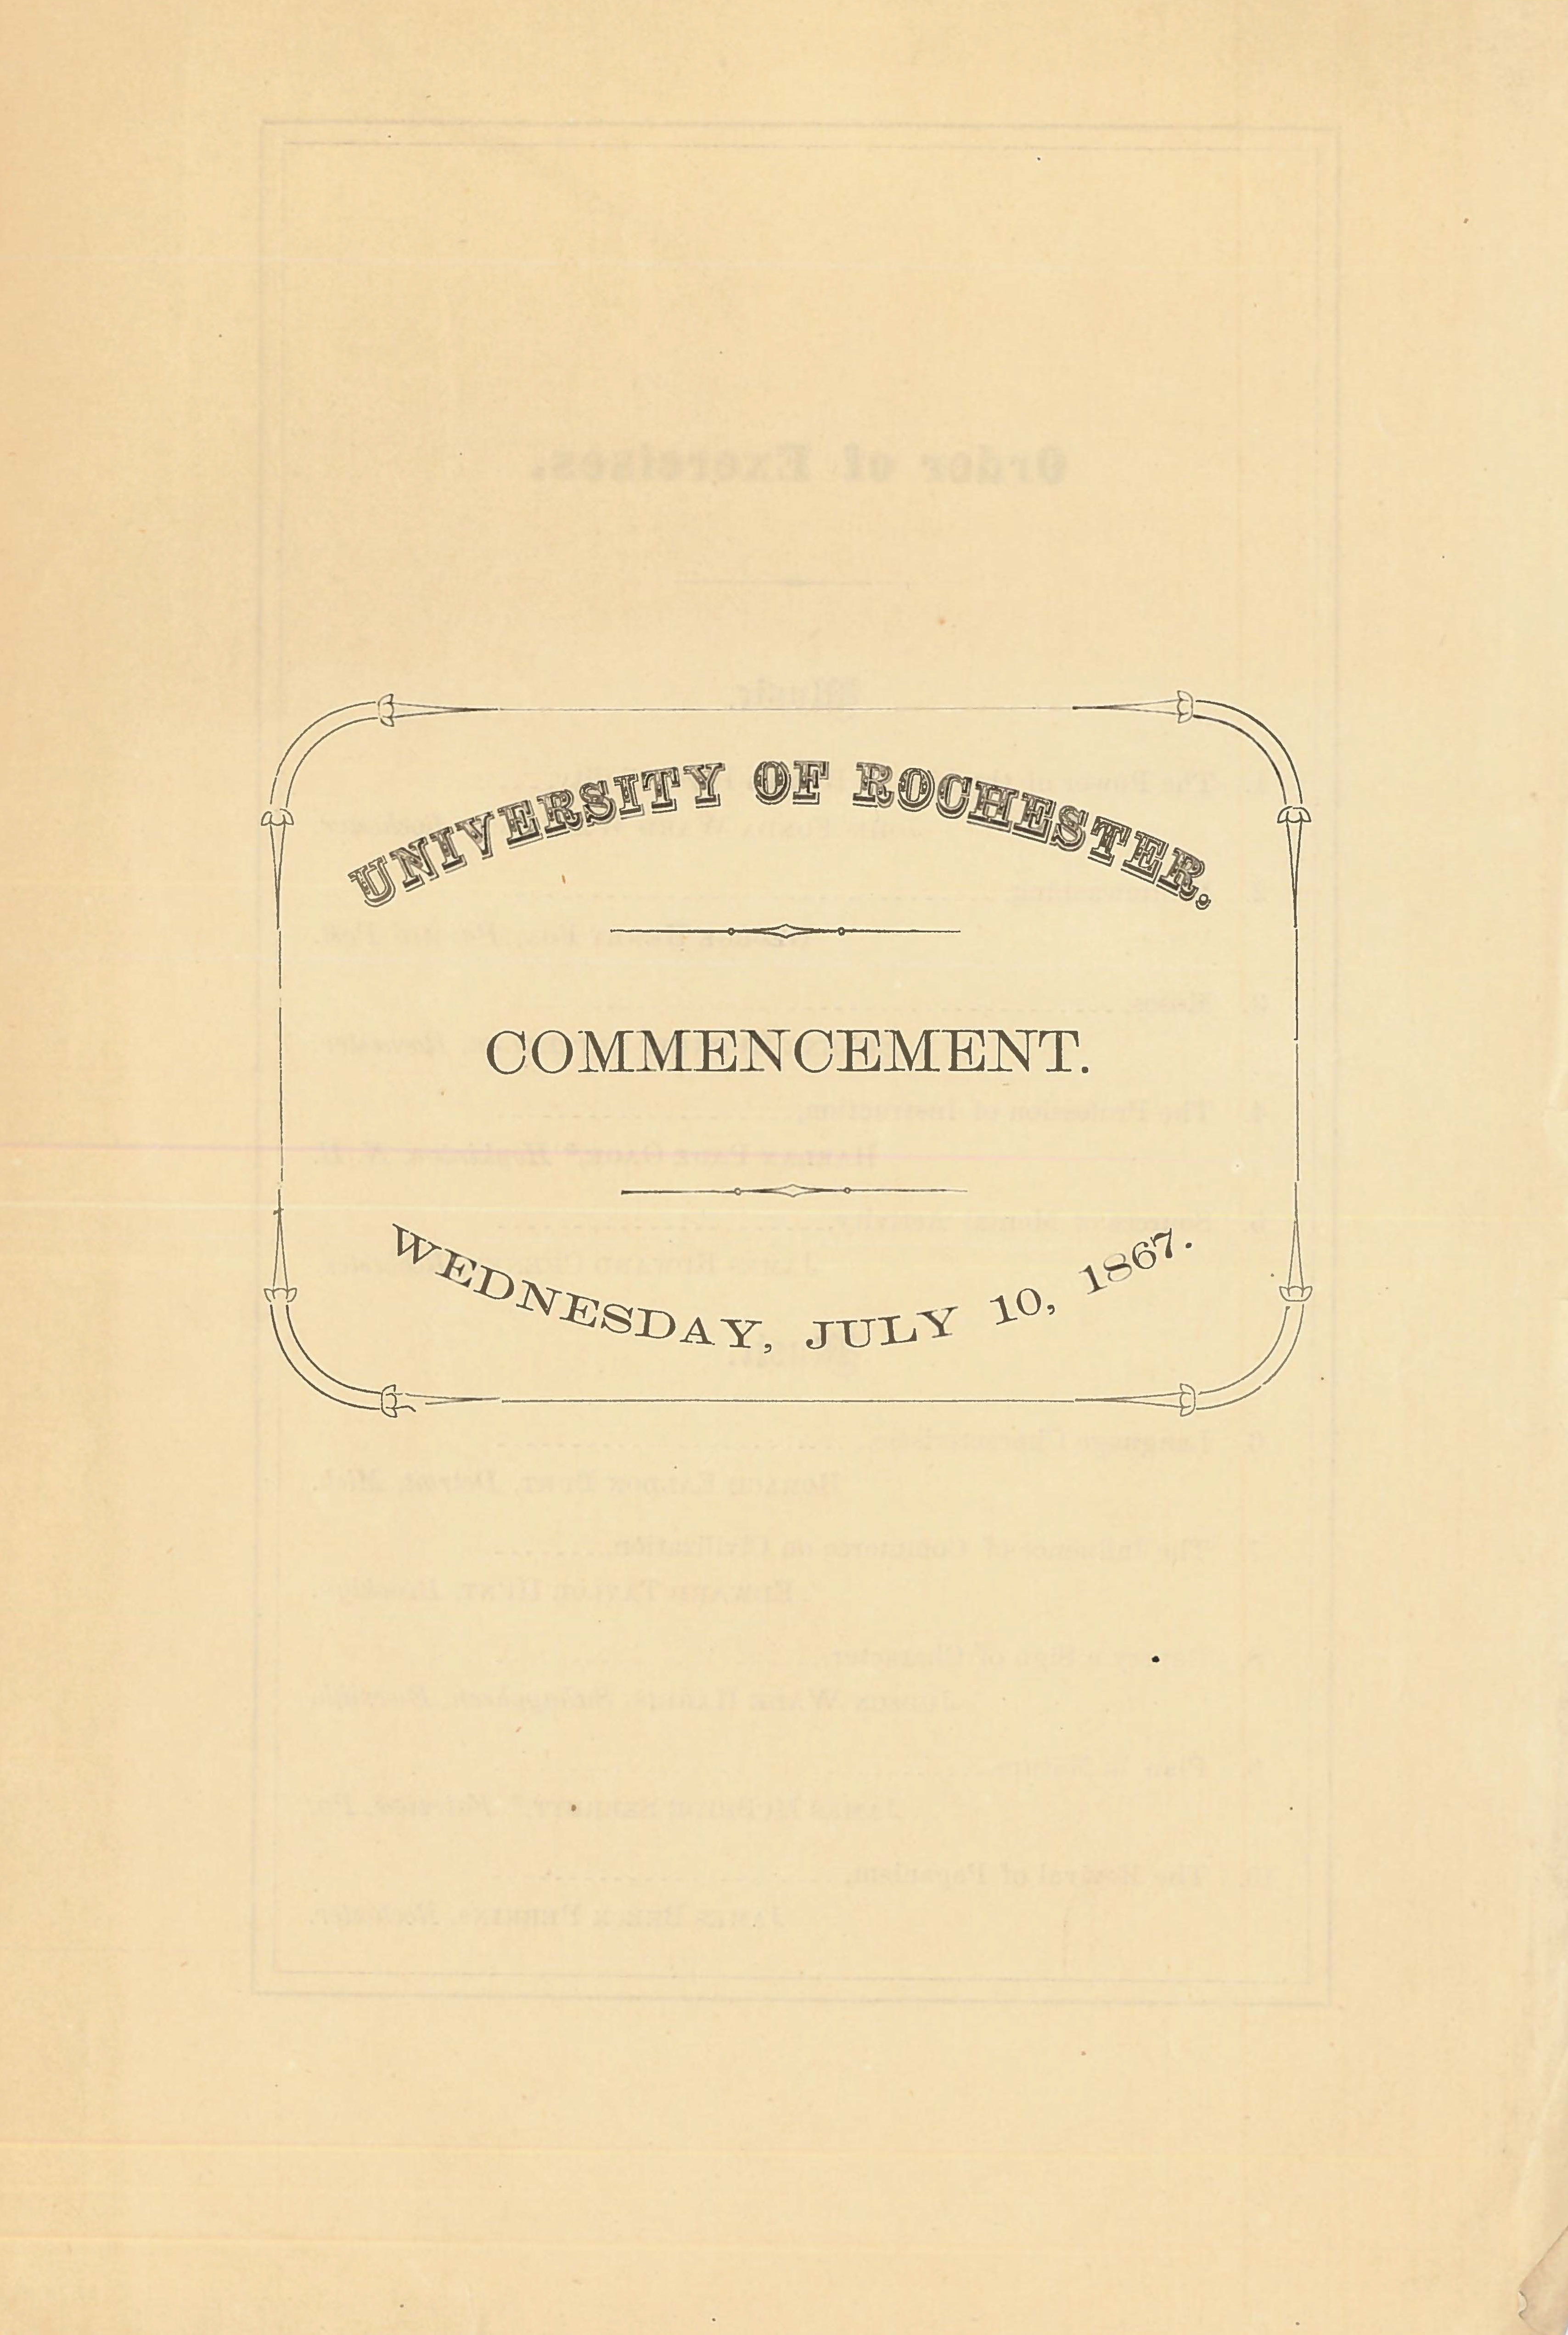 Commencement program (July 10, 1867)